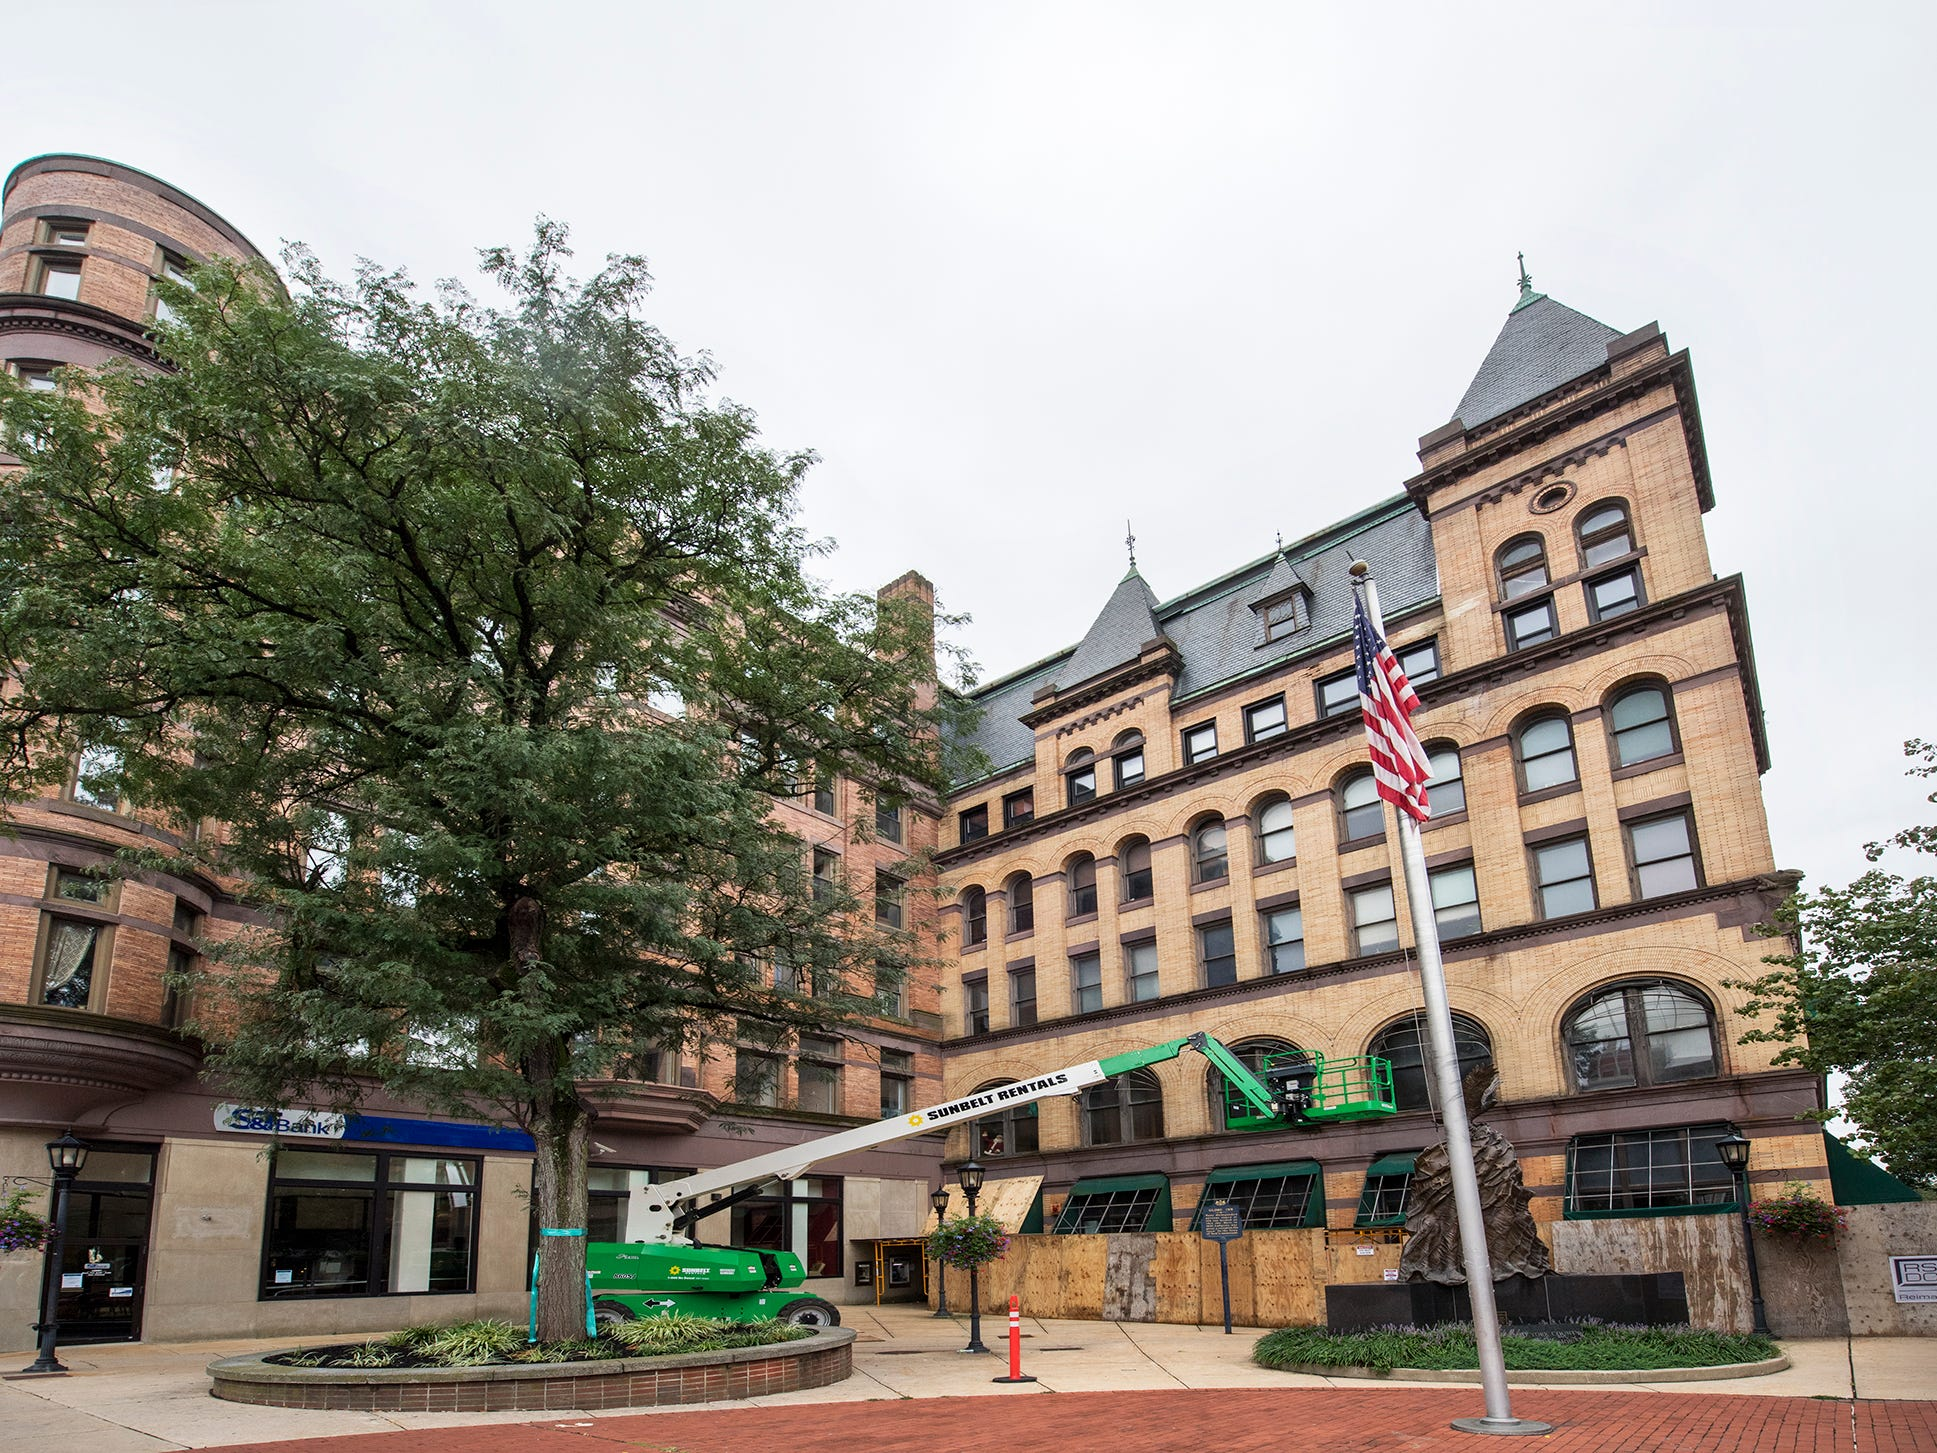 The Rupp-Schmidt Building, at right, at 2 West Market Street in York is in the process of exterior renovation by Royal Square Development & Construction (RSDC).